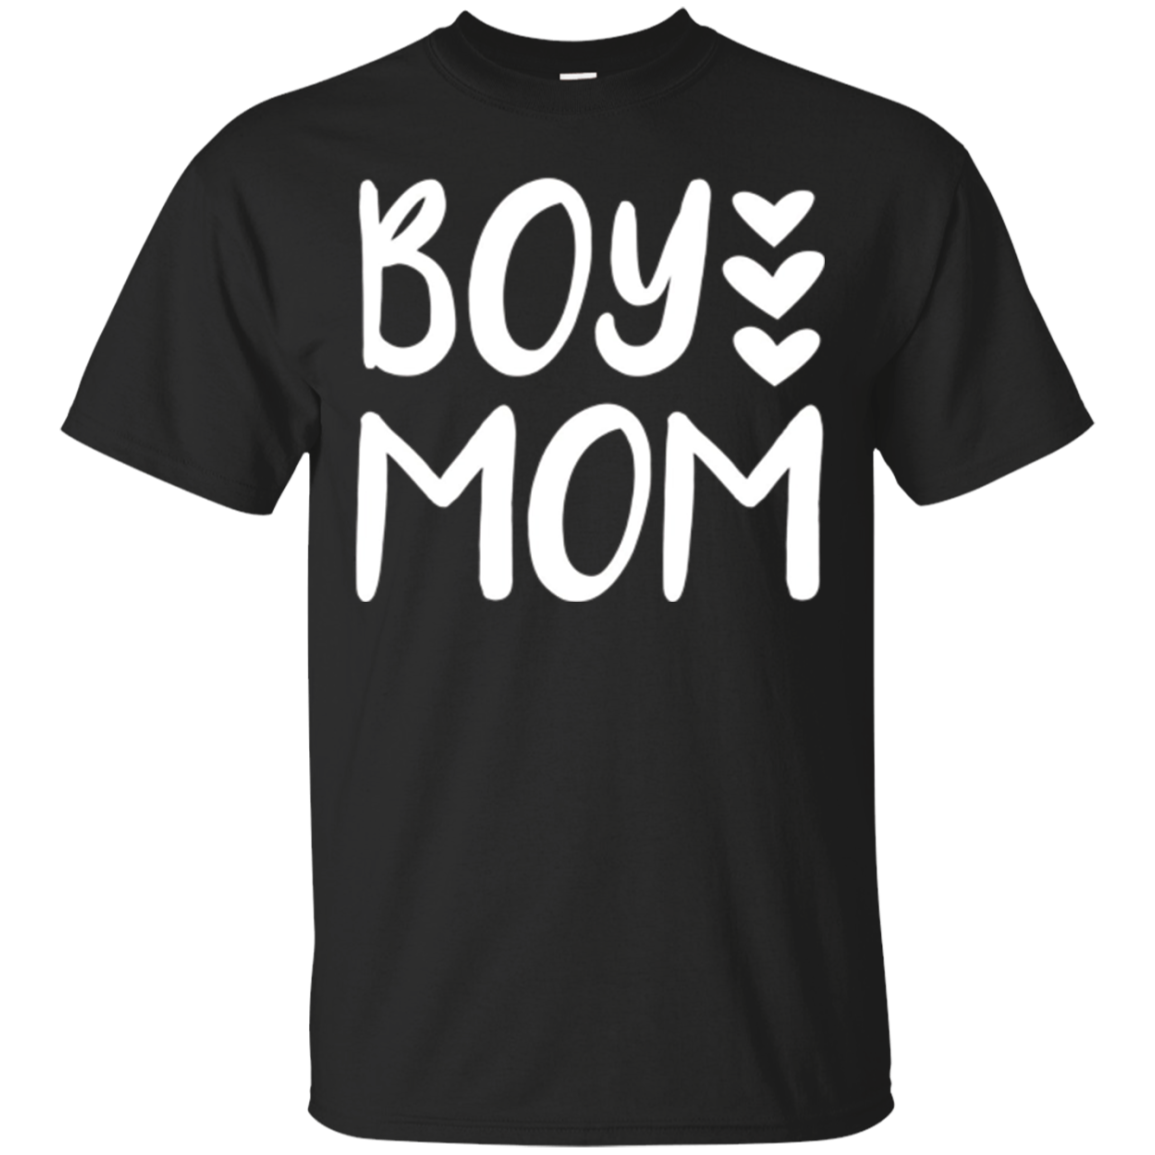 Boy Mom Love Hearts Cute T-Shirt for New Mothers of Baby Boy